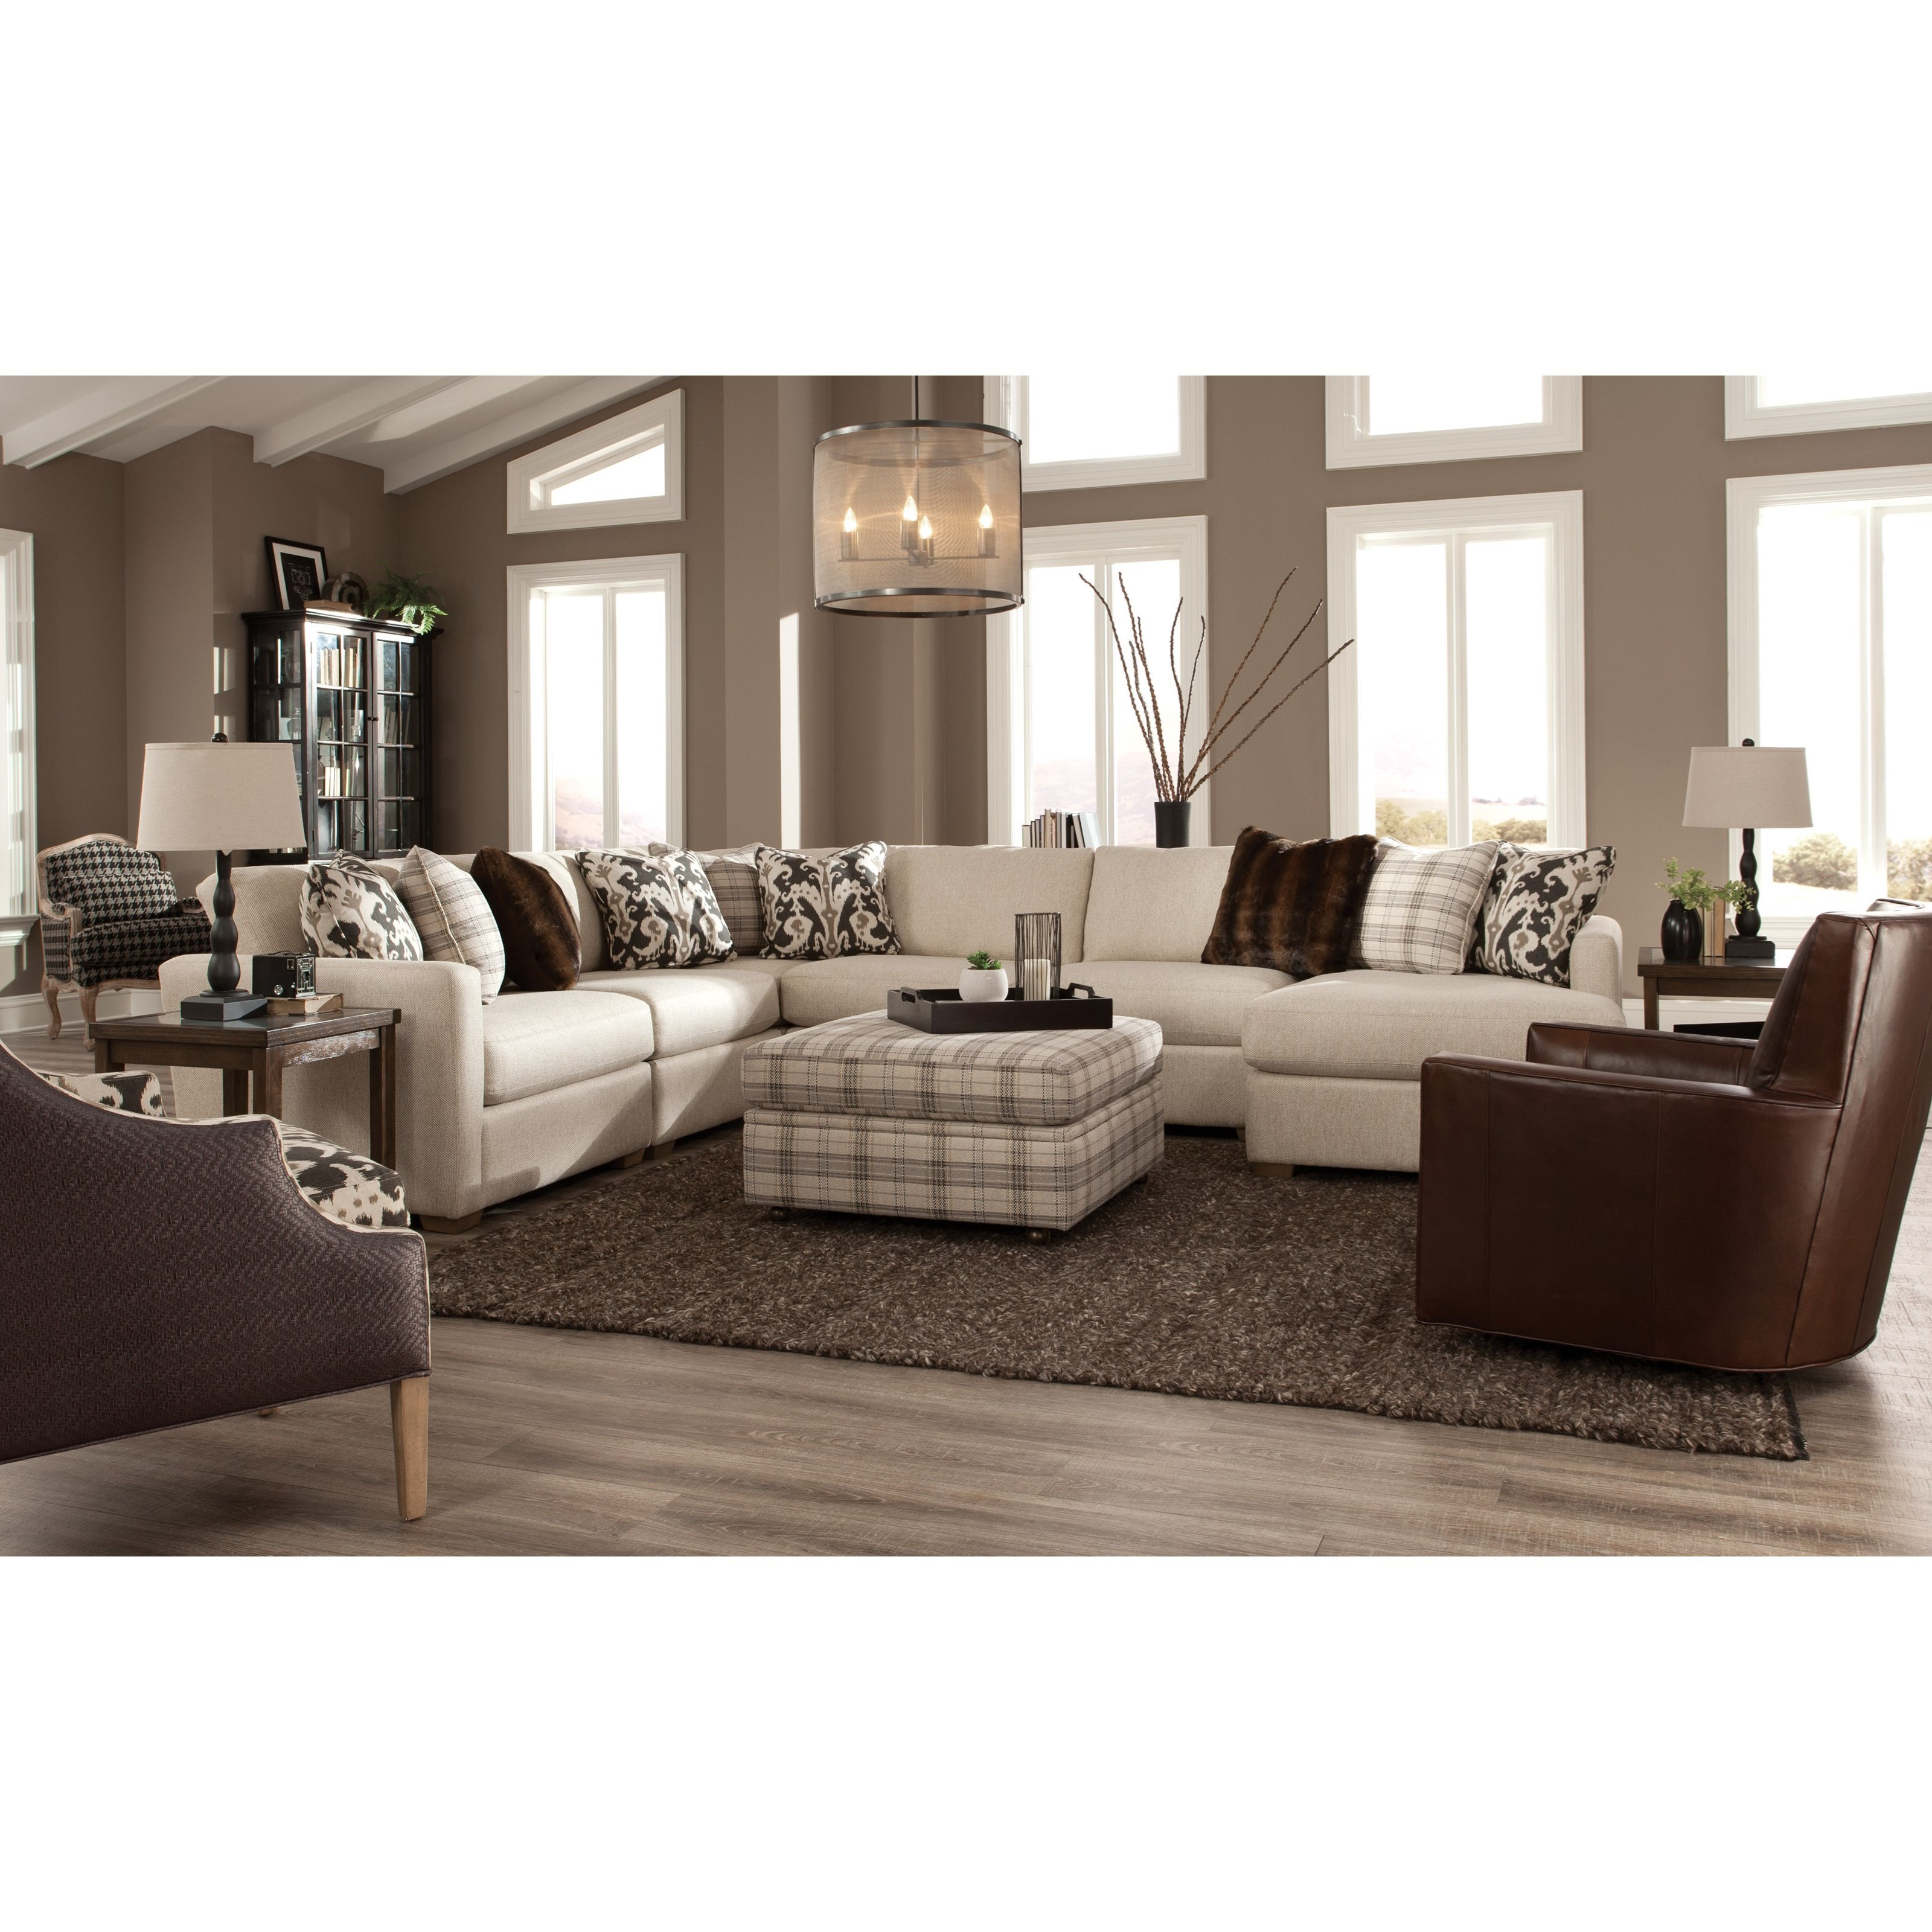 living room furniture groupings craftmaster 751100 living room olinde s furniture 13312